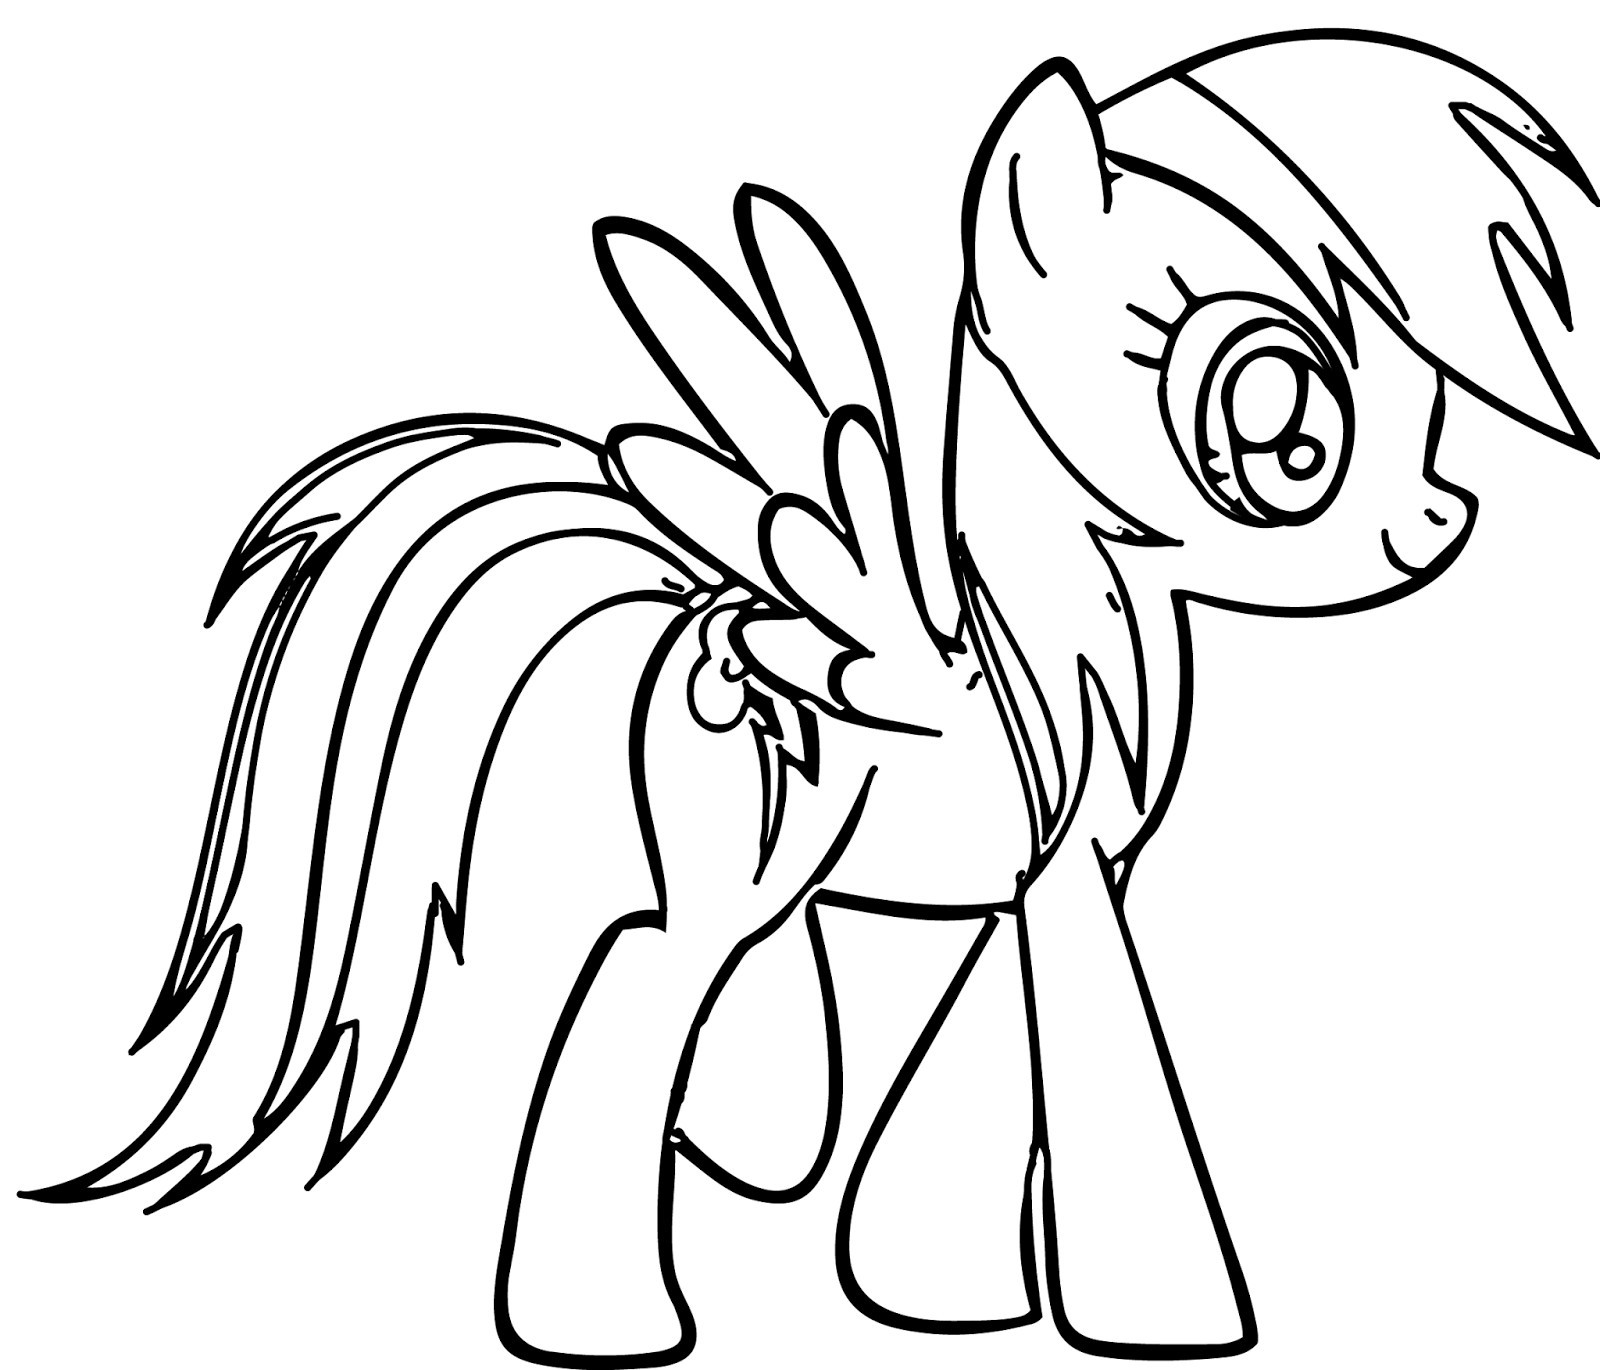 my little pony drawing pages little pony drawing book pages in 2020 my little pony drawing my little pony pages